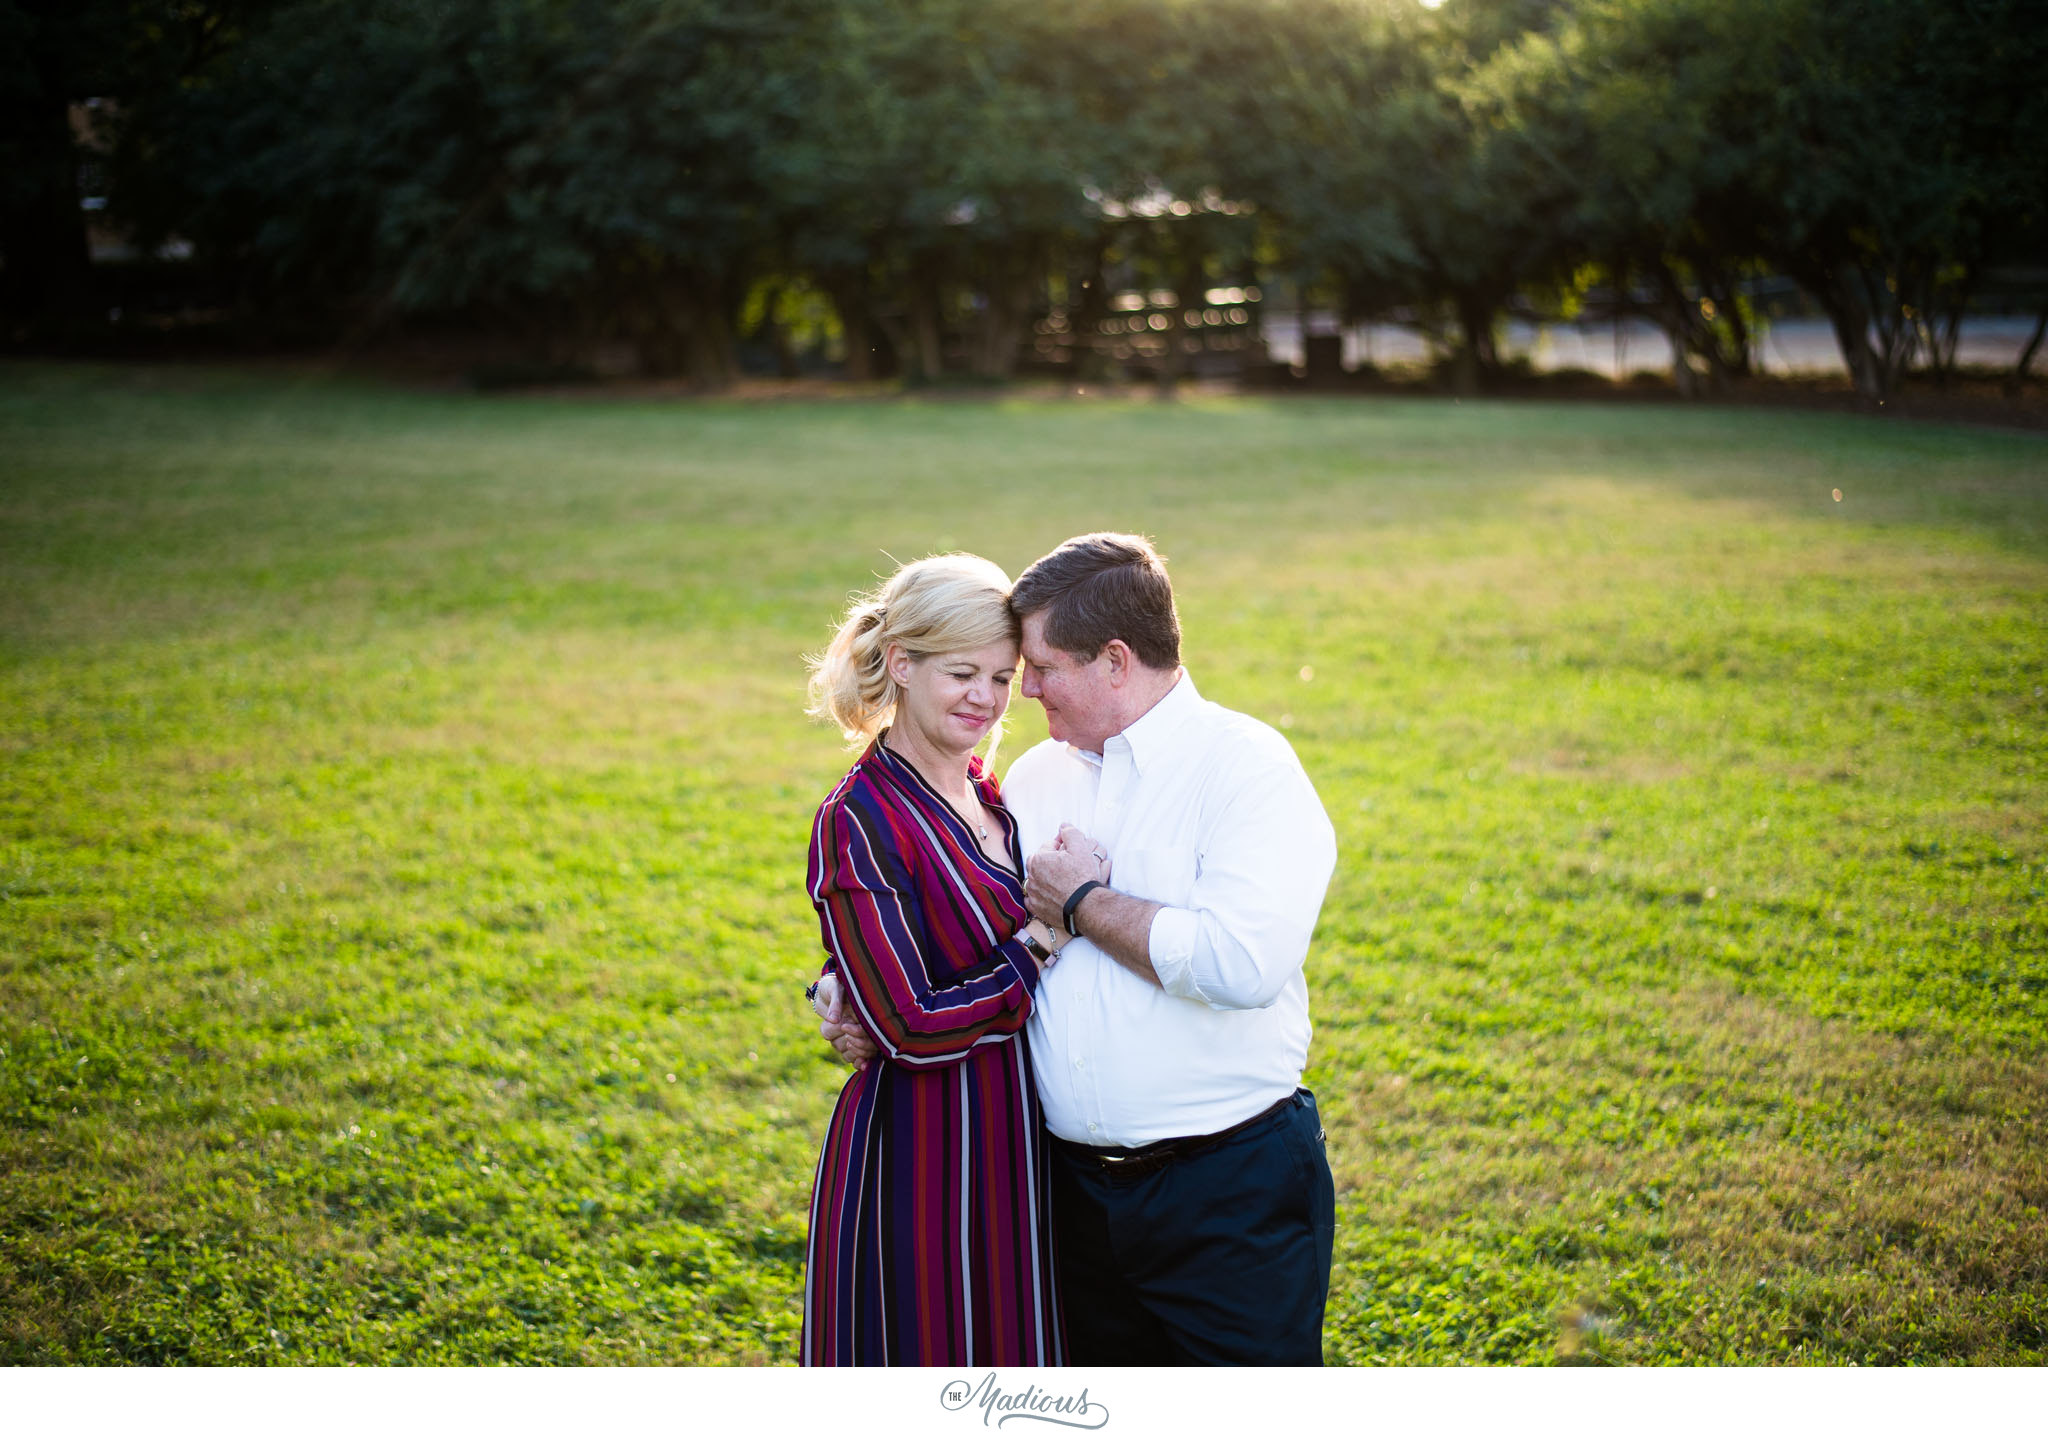 Dumbarton Oaks Park engagement, DC engagement session, 0007.JPG